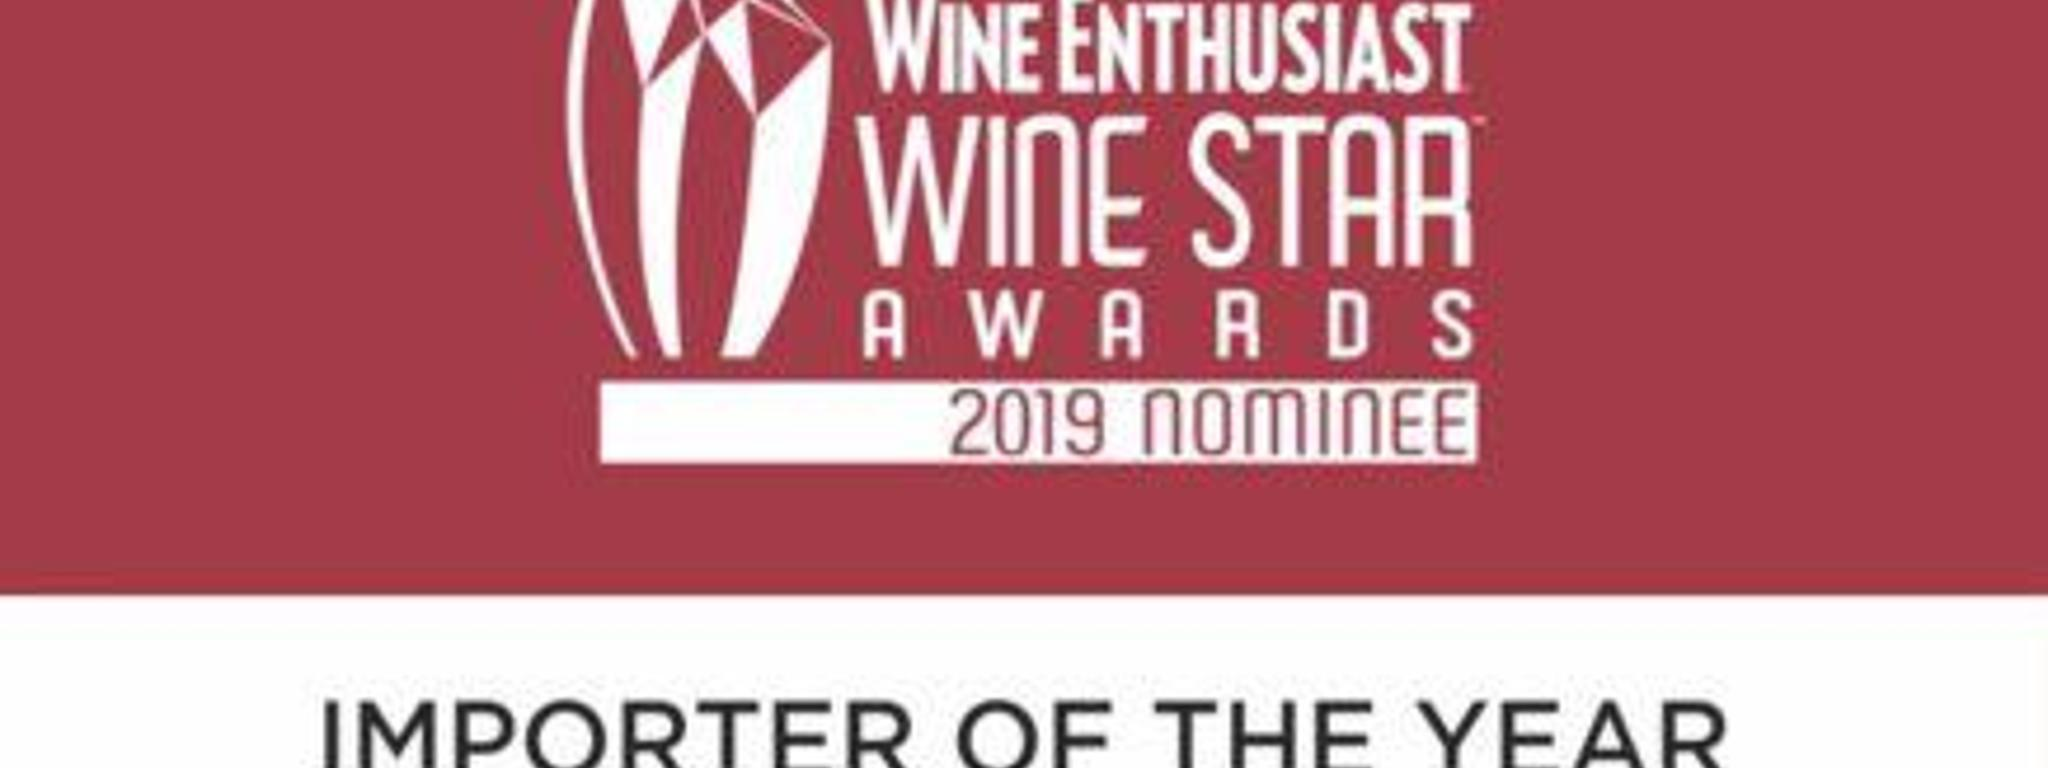 Cover fill we wine star award 2019 nominee square